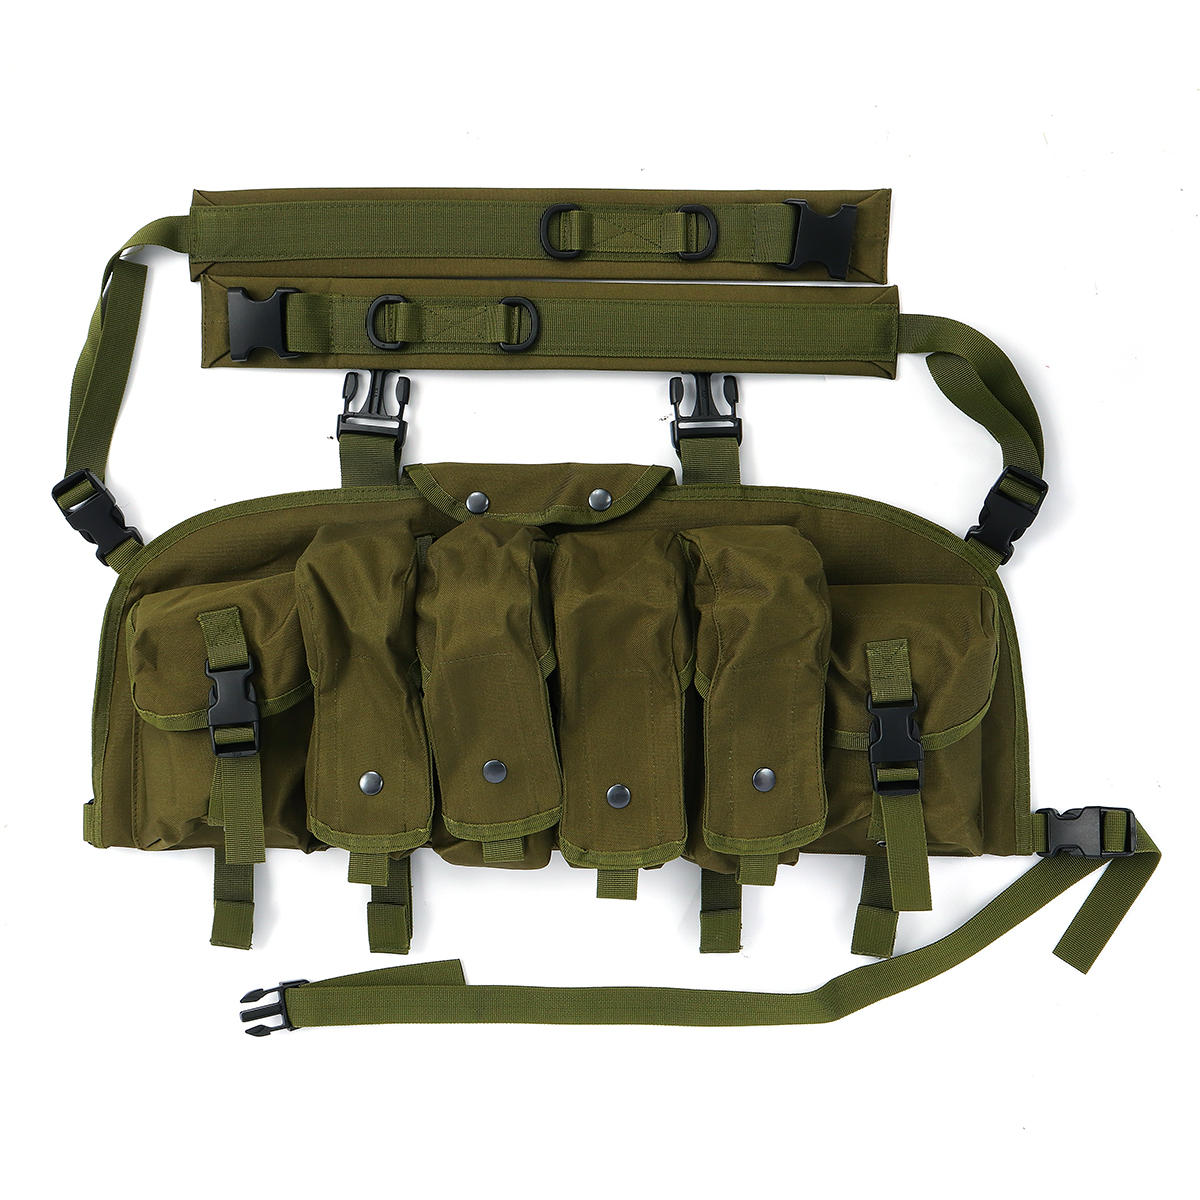 Chaleco táctico unisex al aire libre Combat Game Training Storage Carrier Belly Pocket Vest - 3